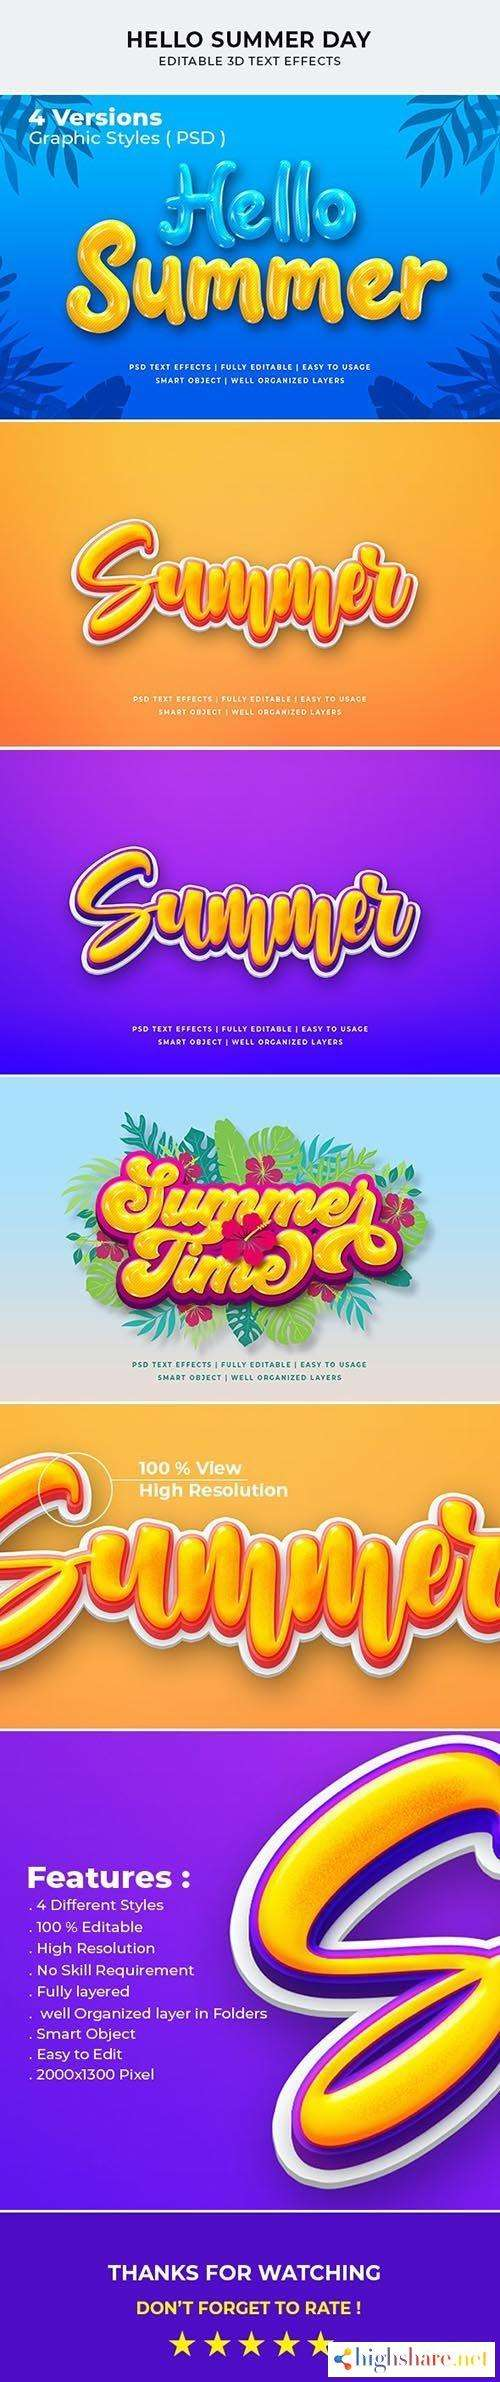 graphicriver hello summer day 3d text style effect 27668919 5f49c13ba2ab9 - GraphicRiver - Hello Summer Day 3d Text Style Effect 27668919